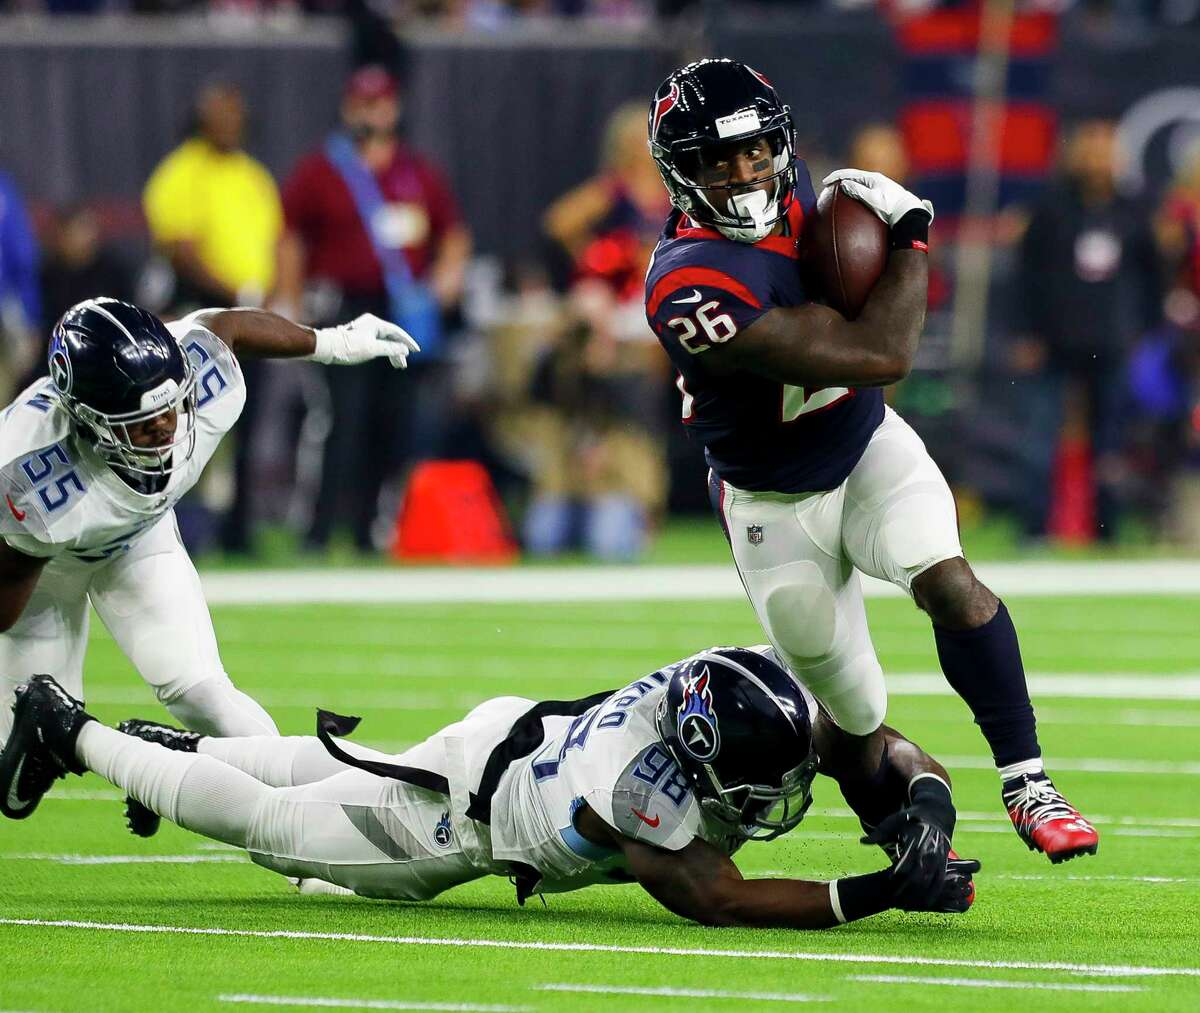 Houston Texans running back Lamar Miller (26) tries to escape Tennessee Titans outside linebacker Brian Orakpo (98) during the first quarter of an NFL football game at NRG Stadium on Monday, Nov. 26, 2018, in Houston.